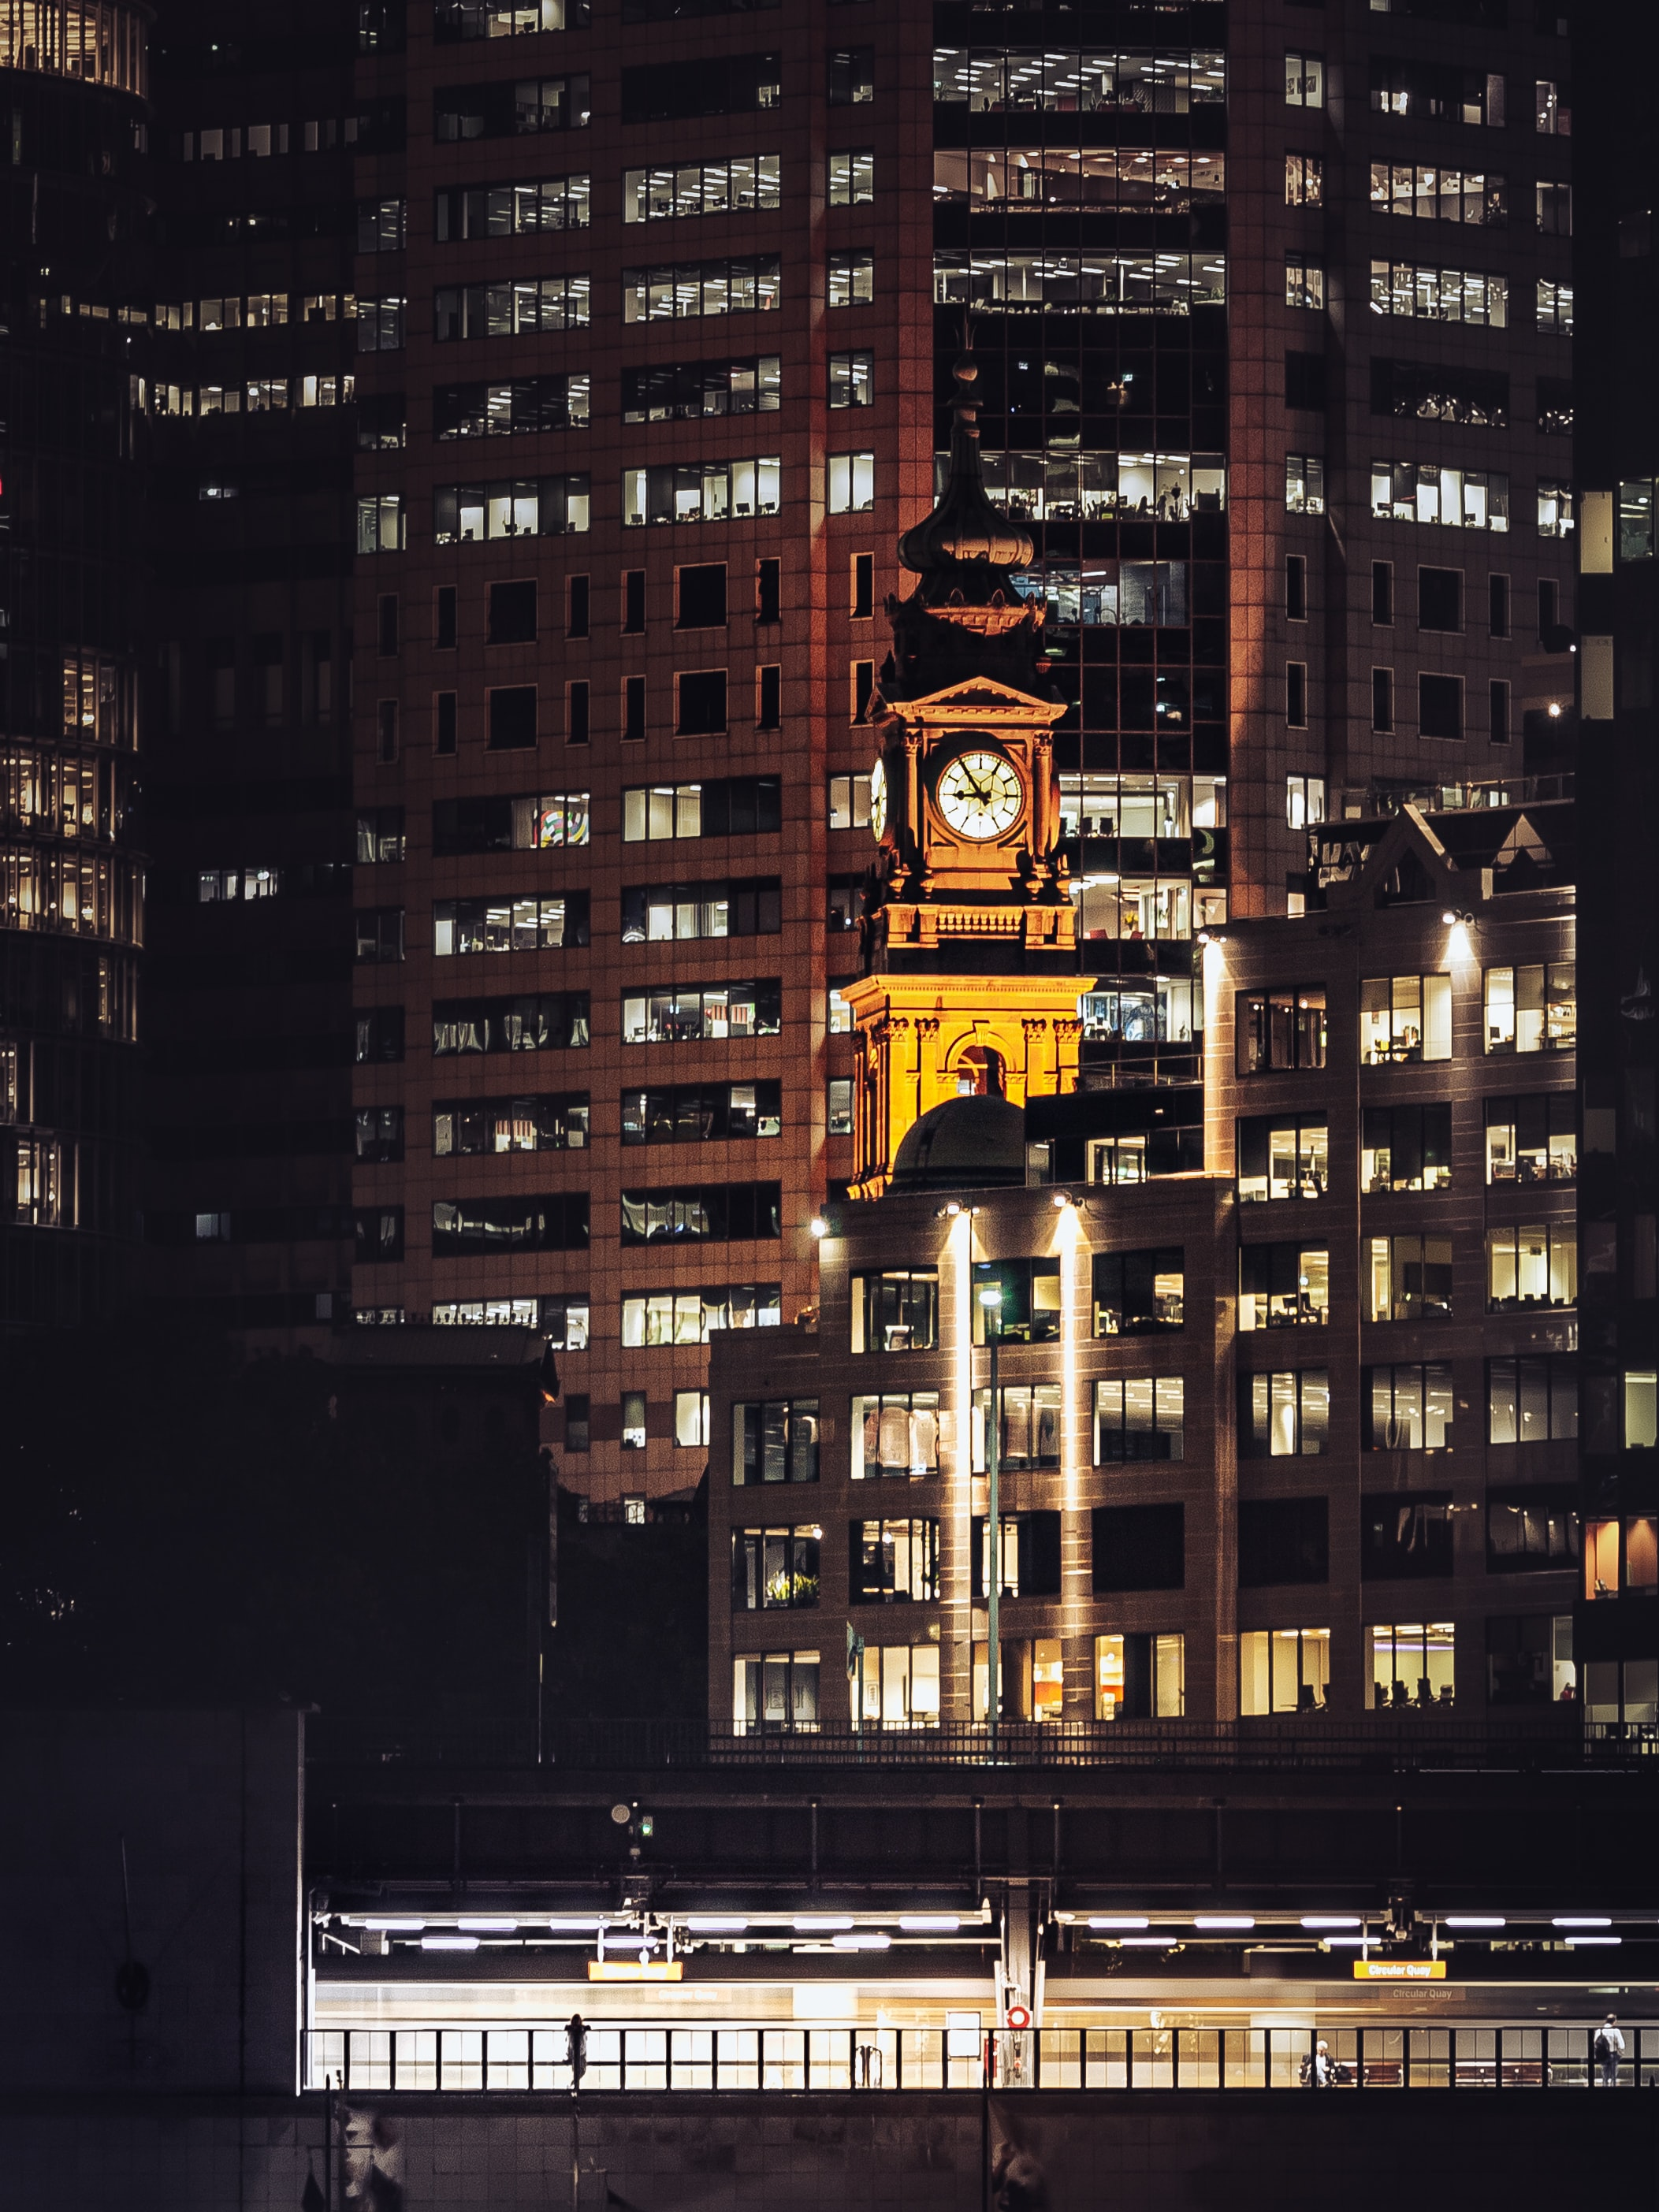 71210 download wallpaper Building, City, Night, Sydney, Australia, Architecture, Cities screensavers and pictures for free